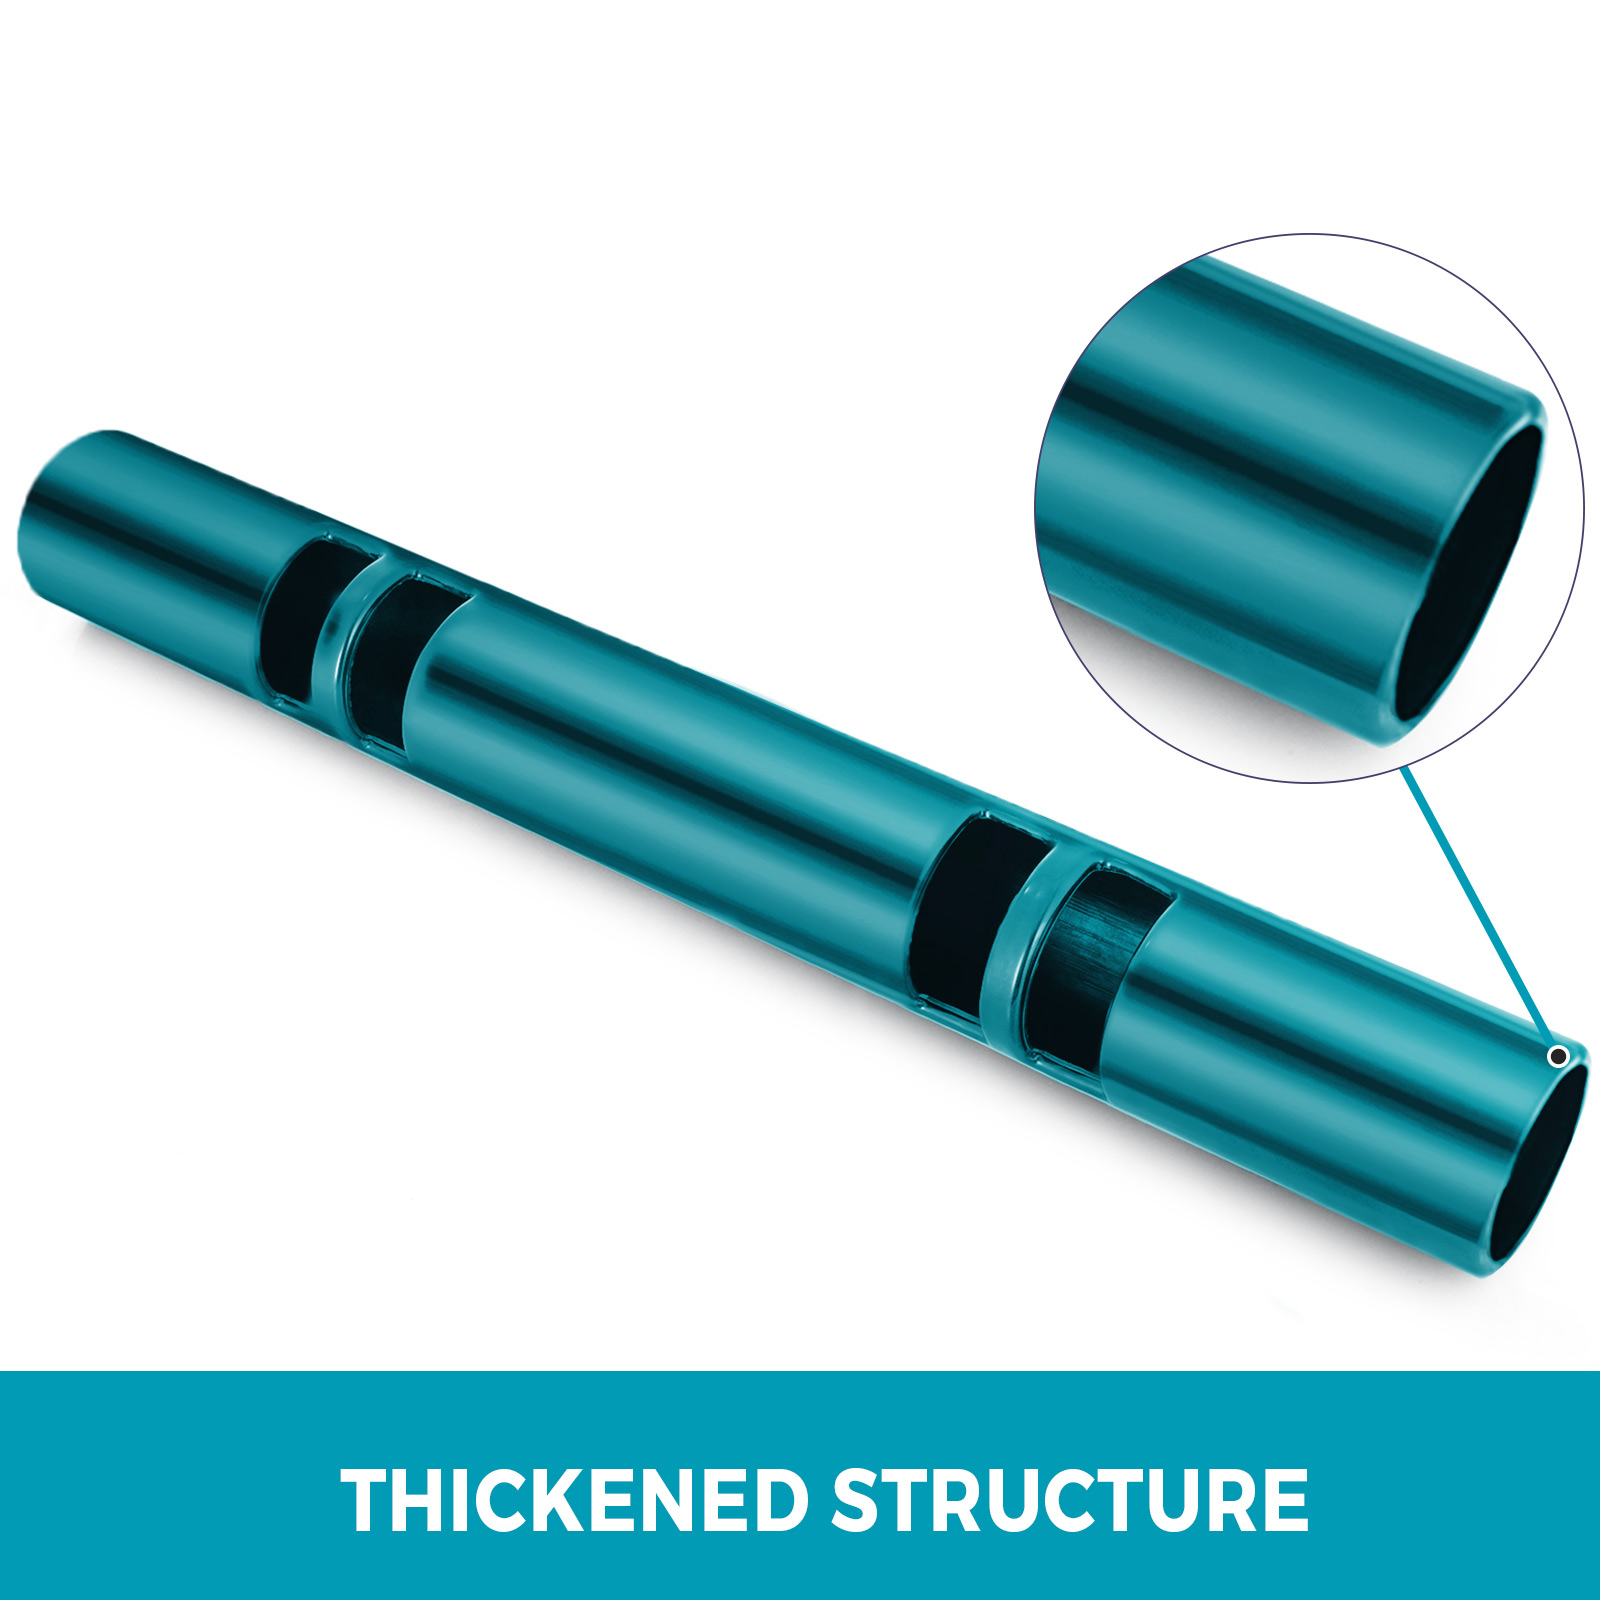 Vipr-Fitpro-Fitness-Tube-Loaded-Movement-Training-weightlifting-4-6-8-10-12-Kg thumbnail 195